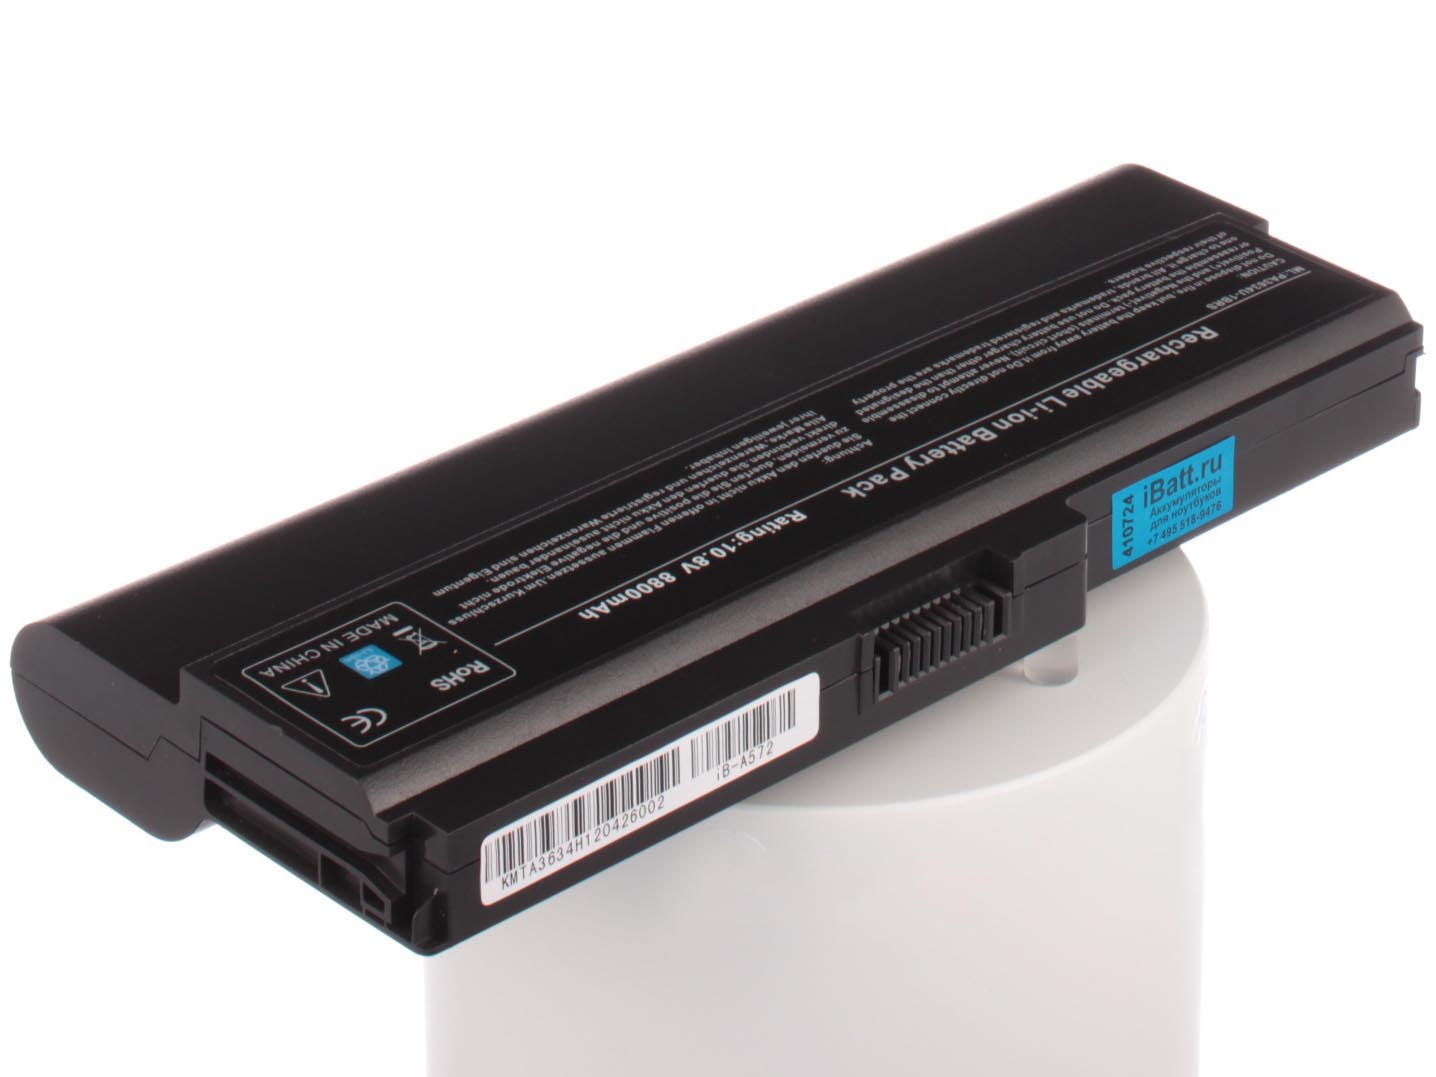 Аккумулятор для ноутбука iBatt для ToshiBa Satellite L755-16U, Satellite L755-192, Satellite C660D-121, Satellite C660-1TN, Satellite C660D-179, Satellite C660-28K, Satellite C650D, Satellite C660-A6K, Satellite C660-1FH wholesale k000111550 la 6843p for toshiba satellite c660 c660d laptop motherboard 100% work perfect